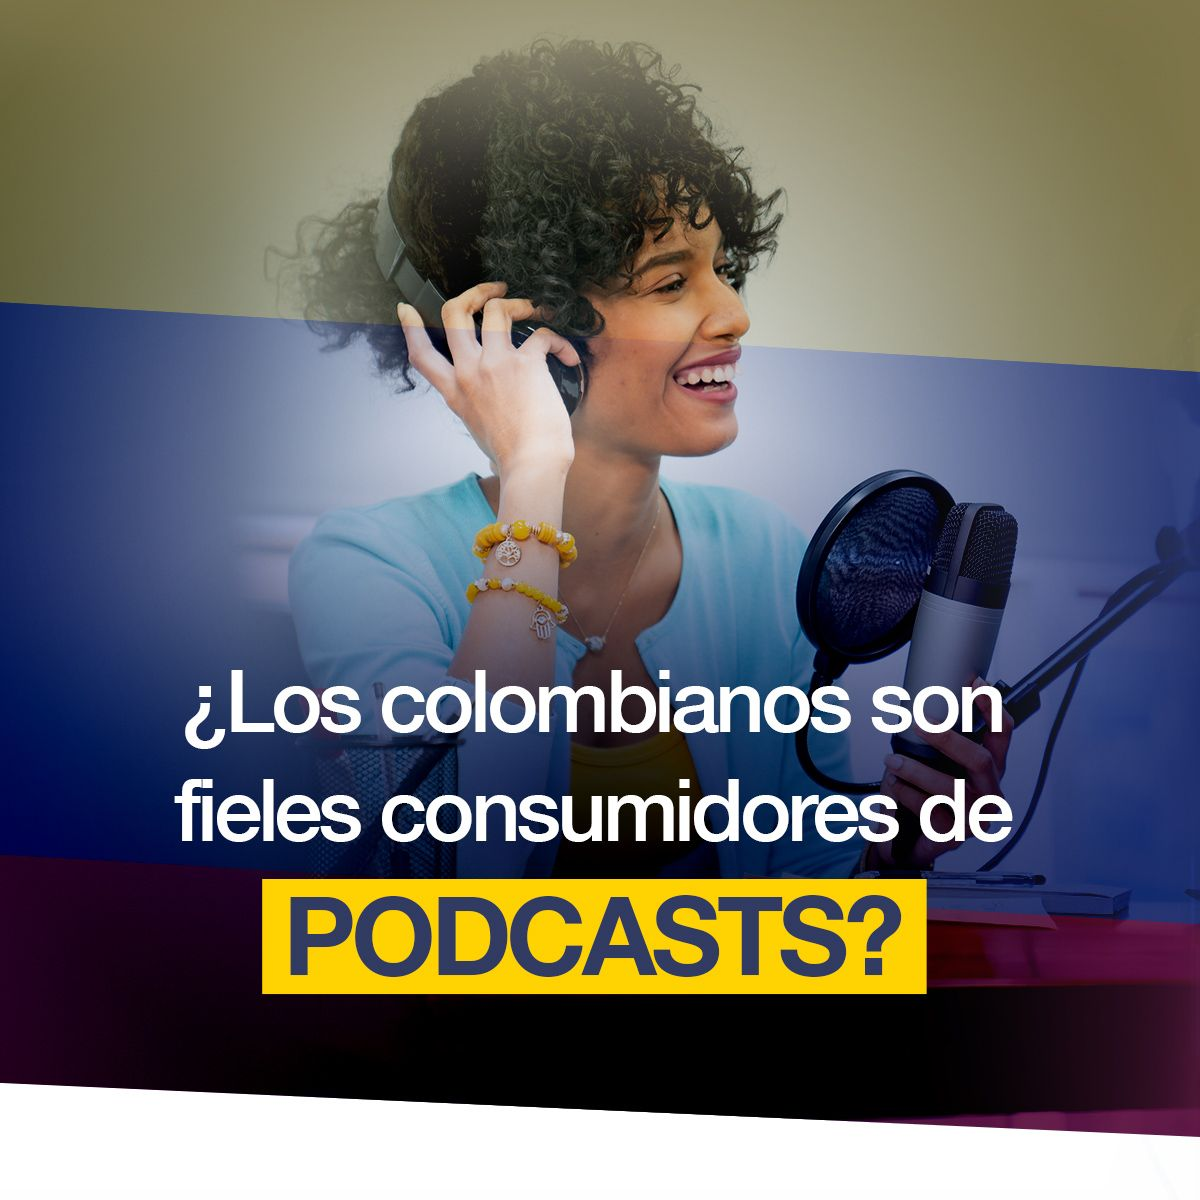 ¿Los colombianos son fieles consumidores de podcasts?